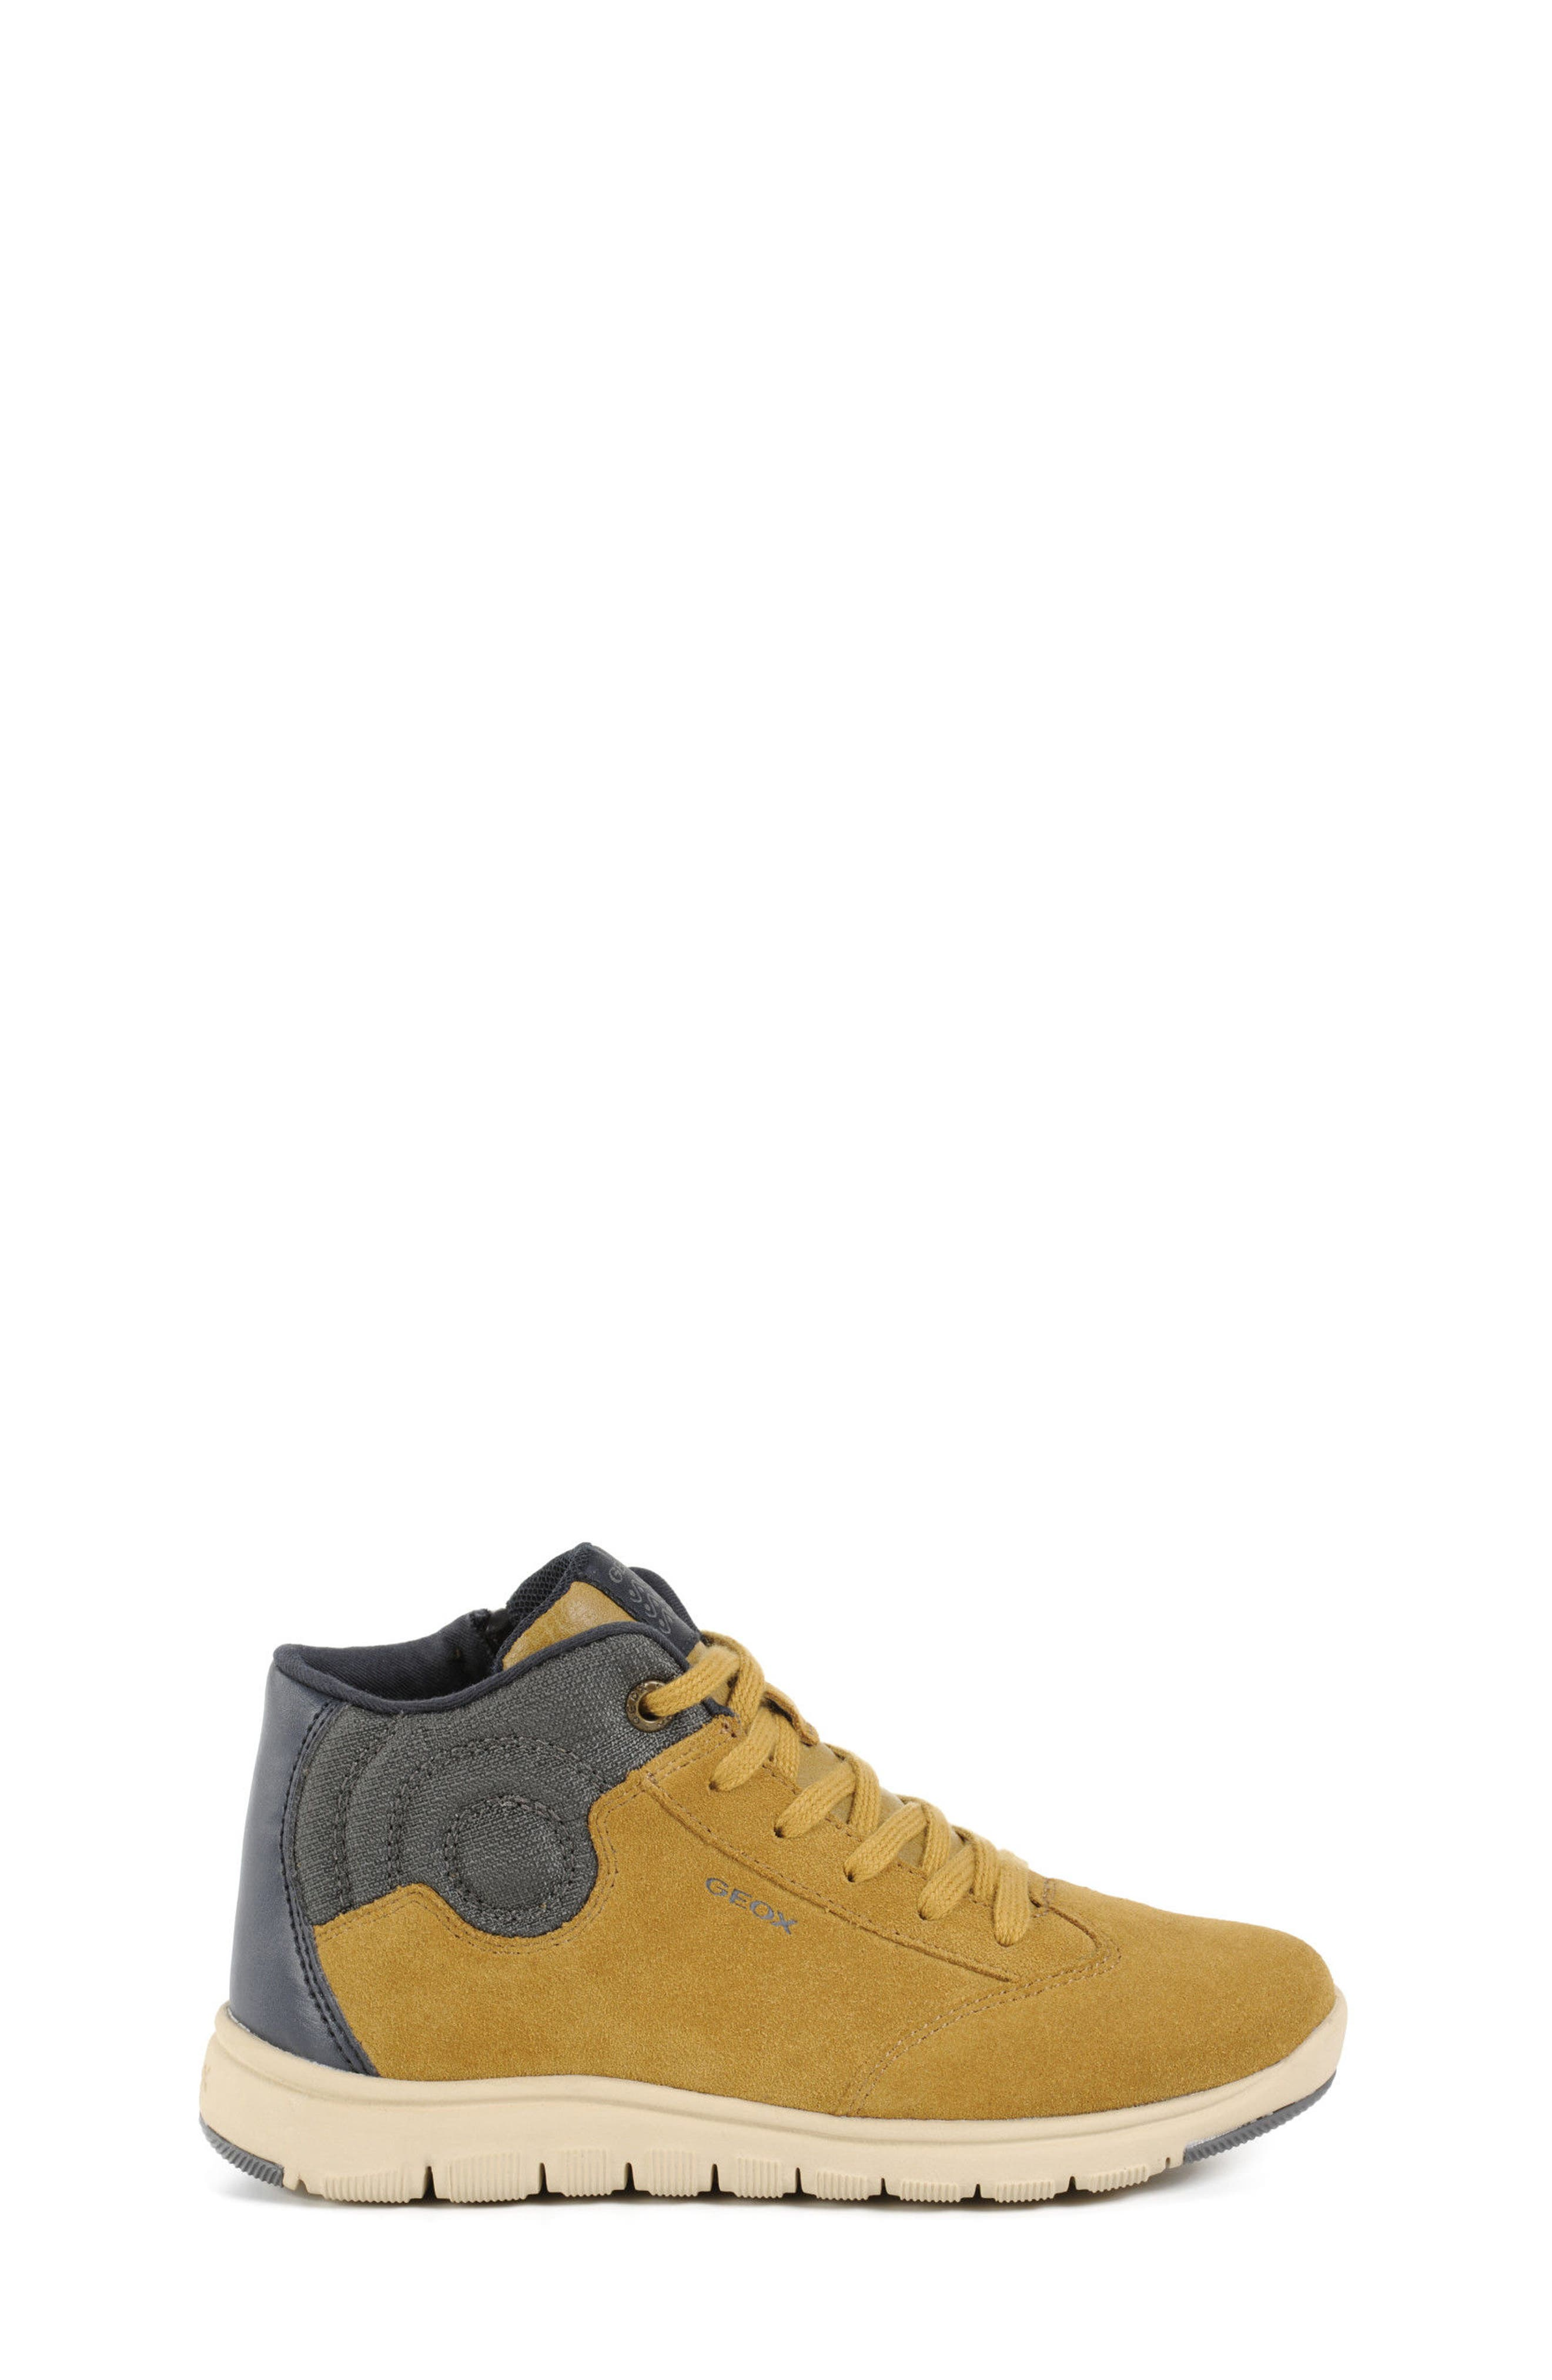 Xunday Mid Top Sneaker,                             Alternate thumbnail 7, color,